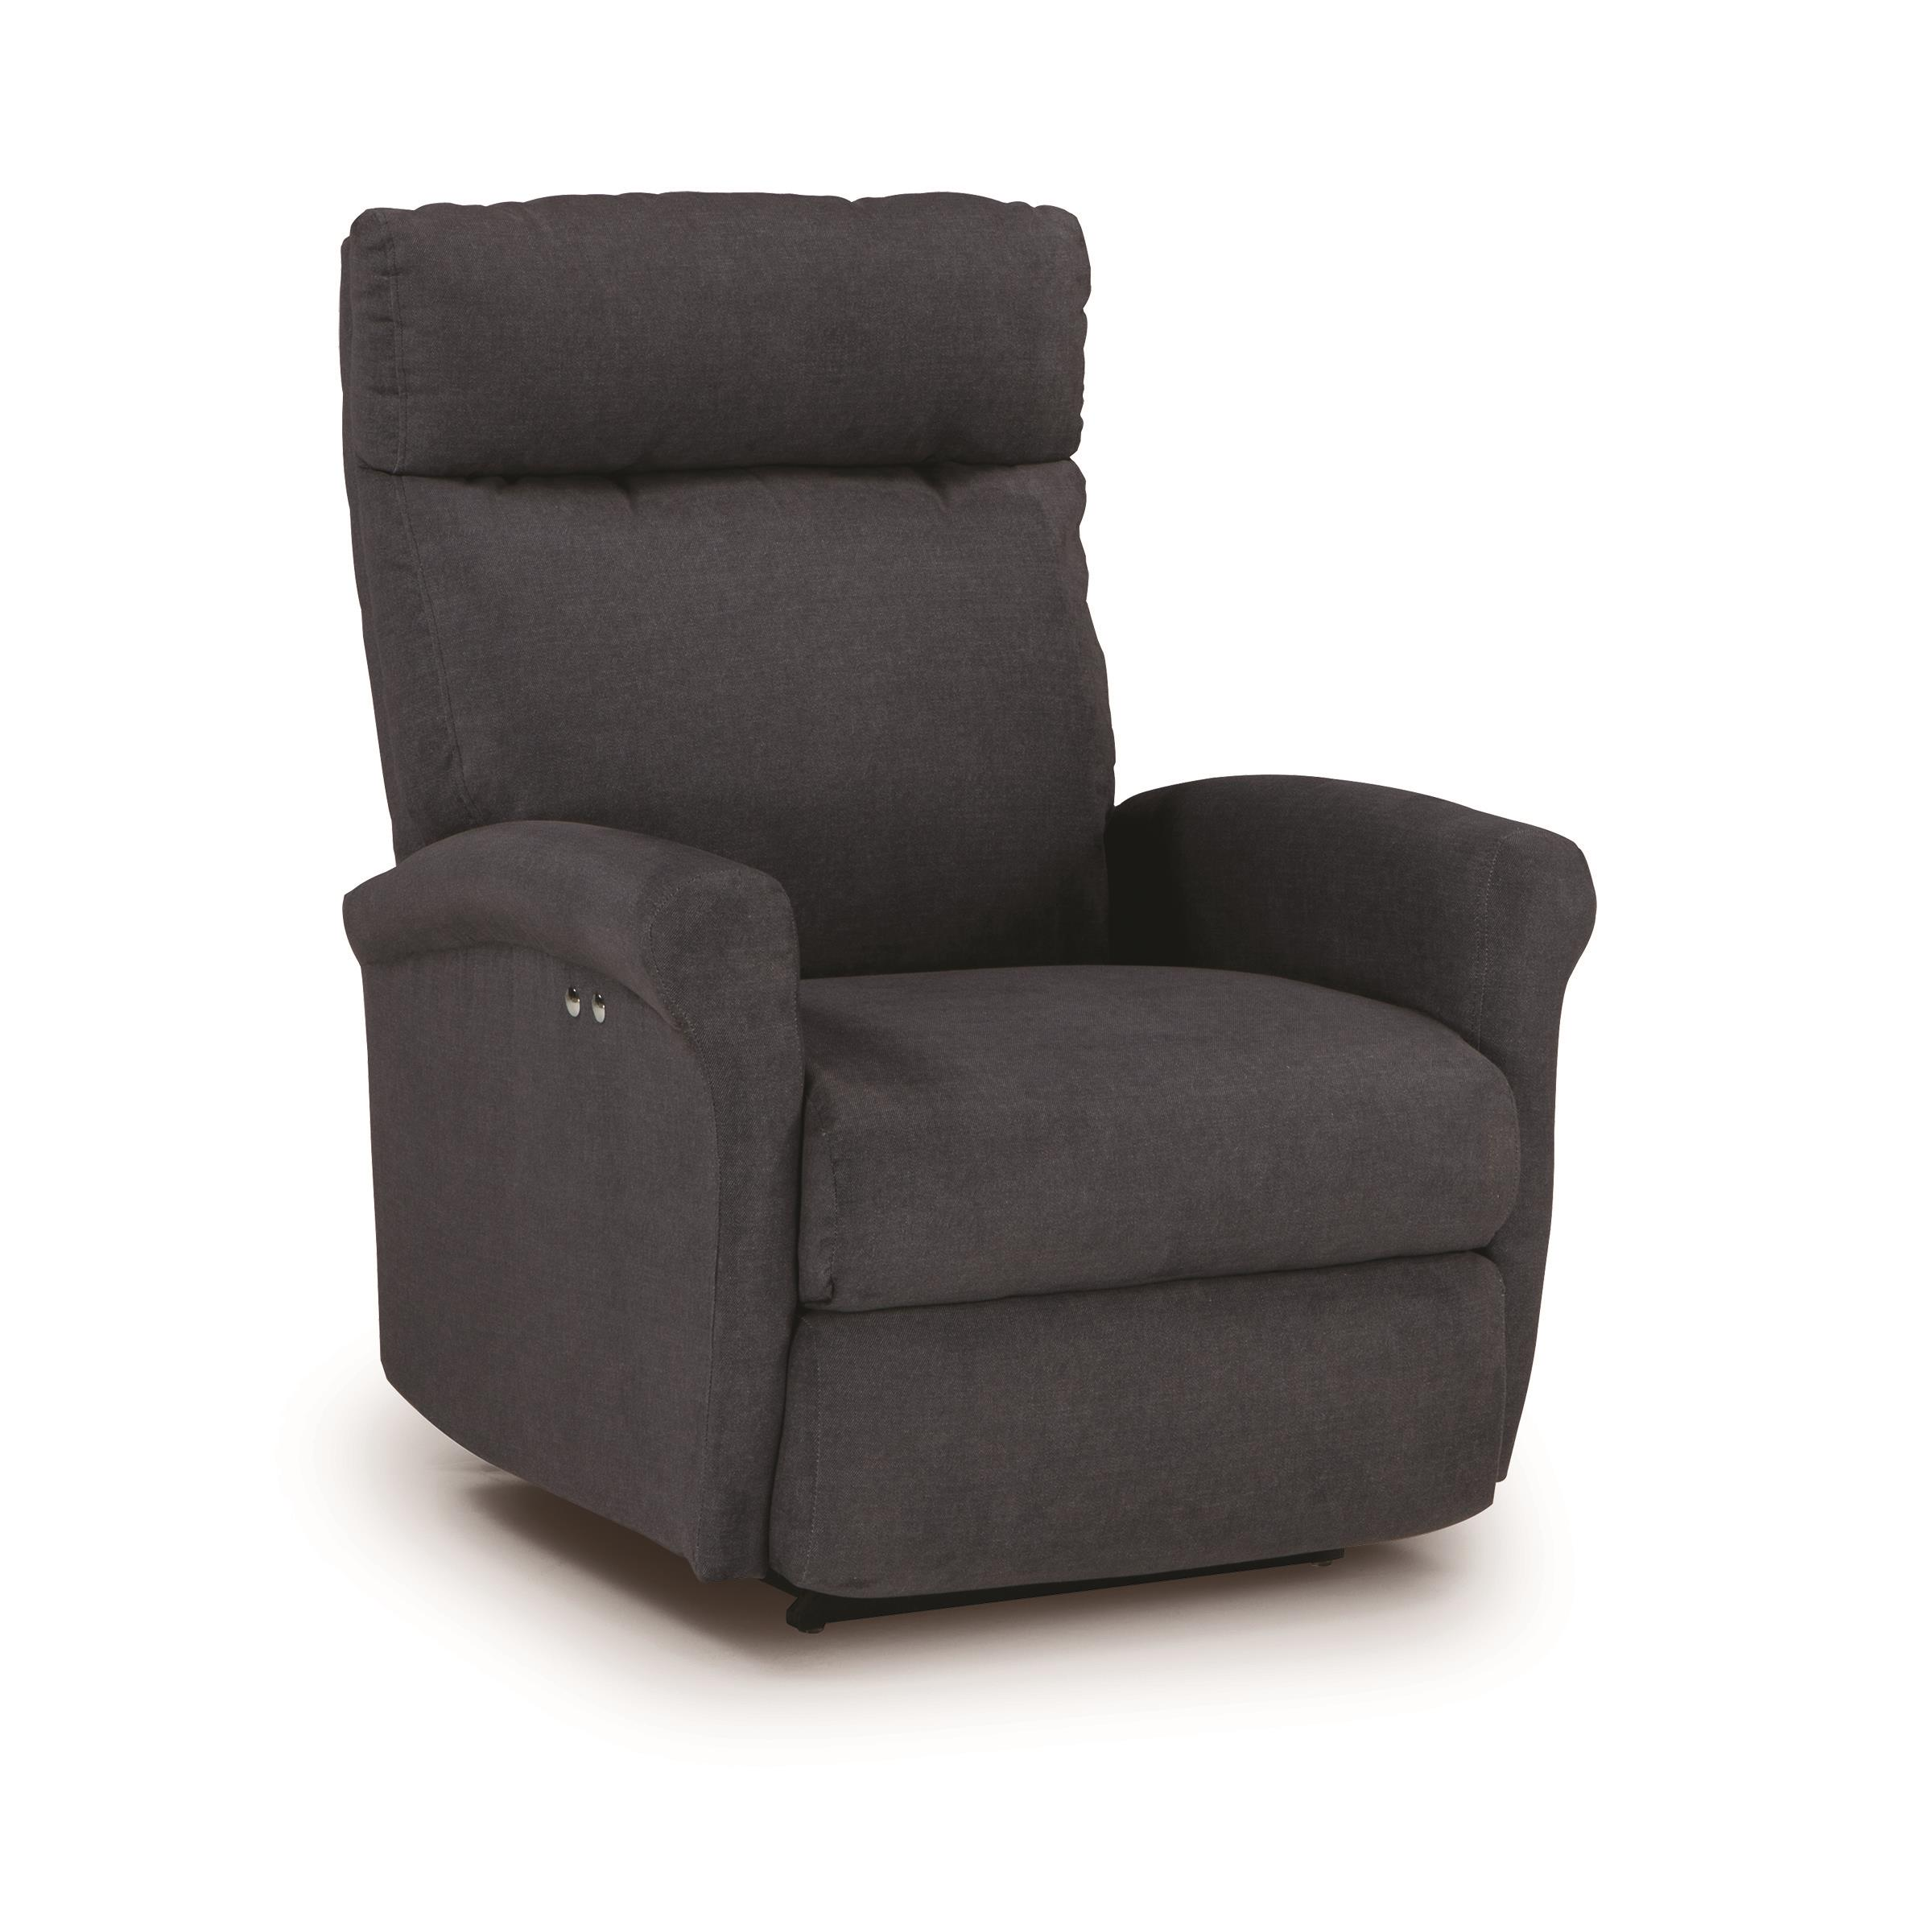 Best Home Furnishings Recliners - Petite Power Rocking Recliner - Item Number 1NP07-21472  sc 1 st  Wayside Furniture & Best Home Furnishings Recliners - Petite Power Rocking Recliner ... islam-shia.org